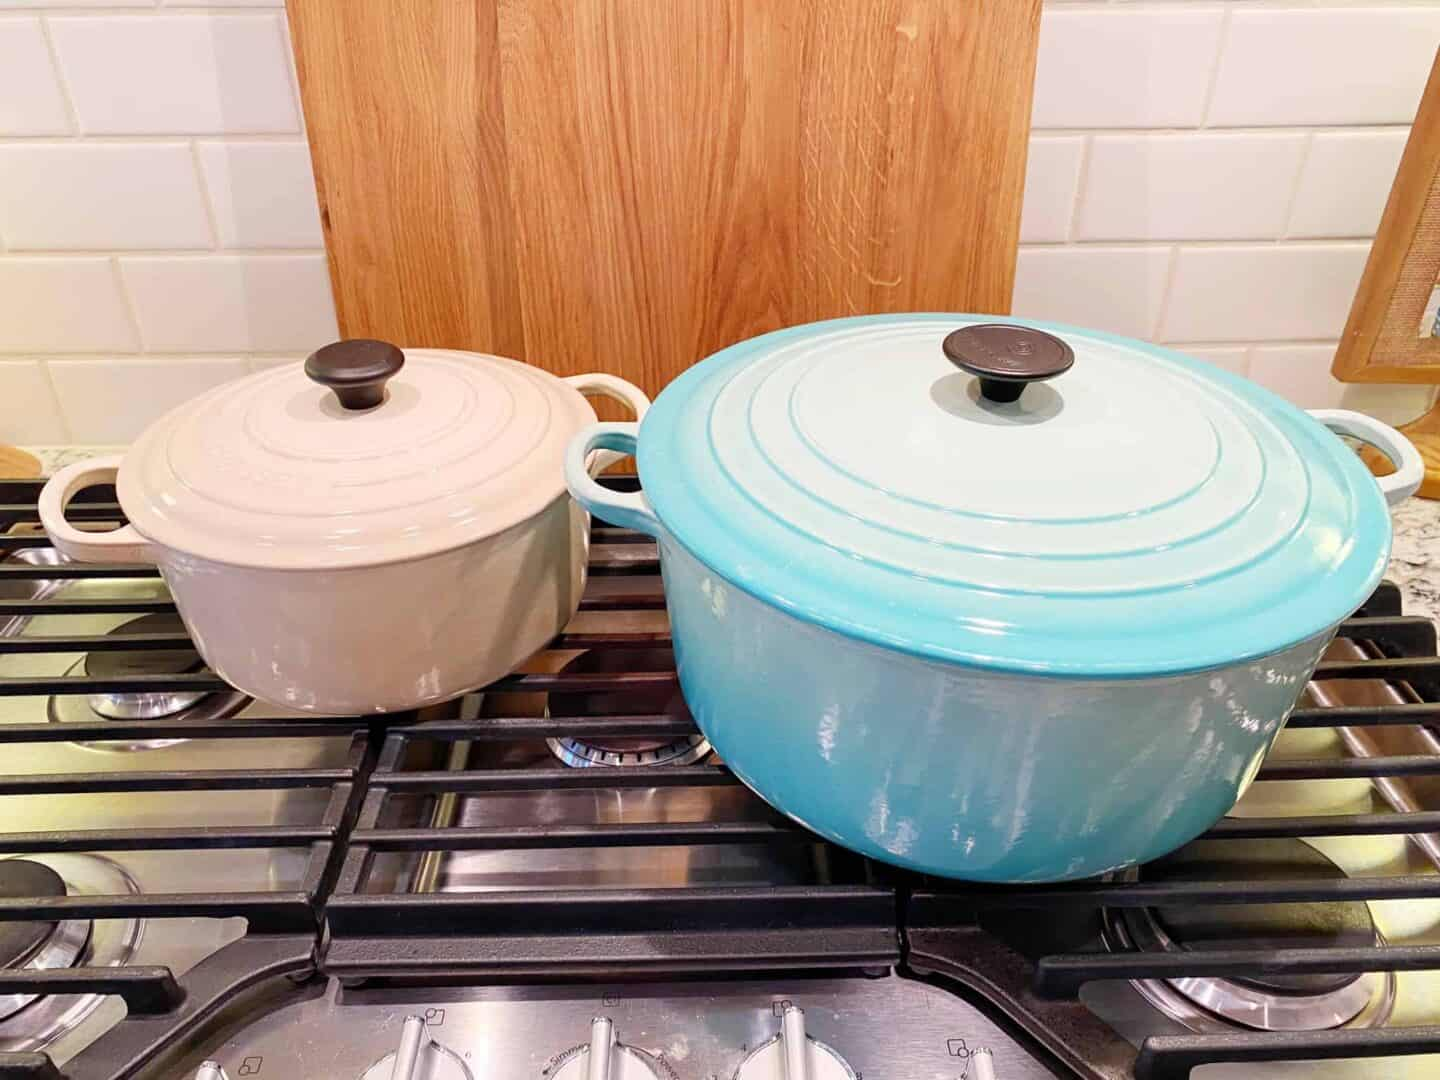 le-creuset-dutch-oven-enameled